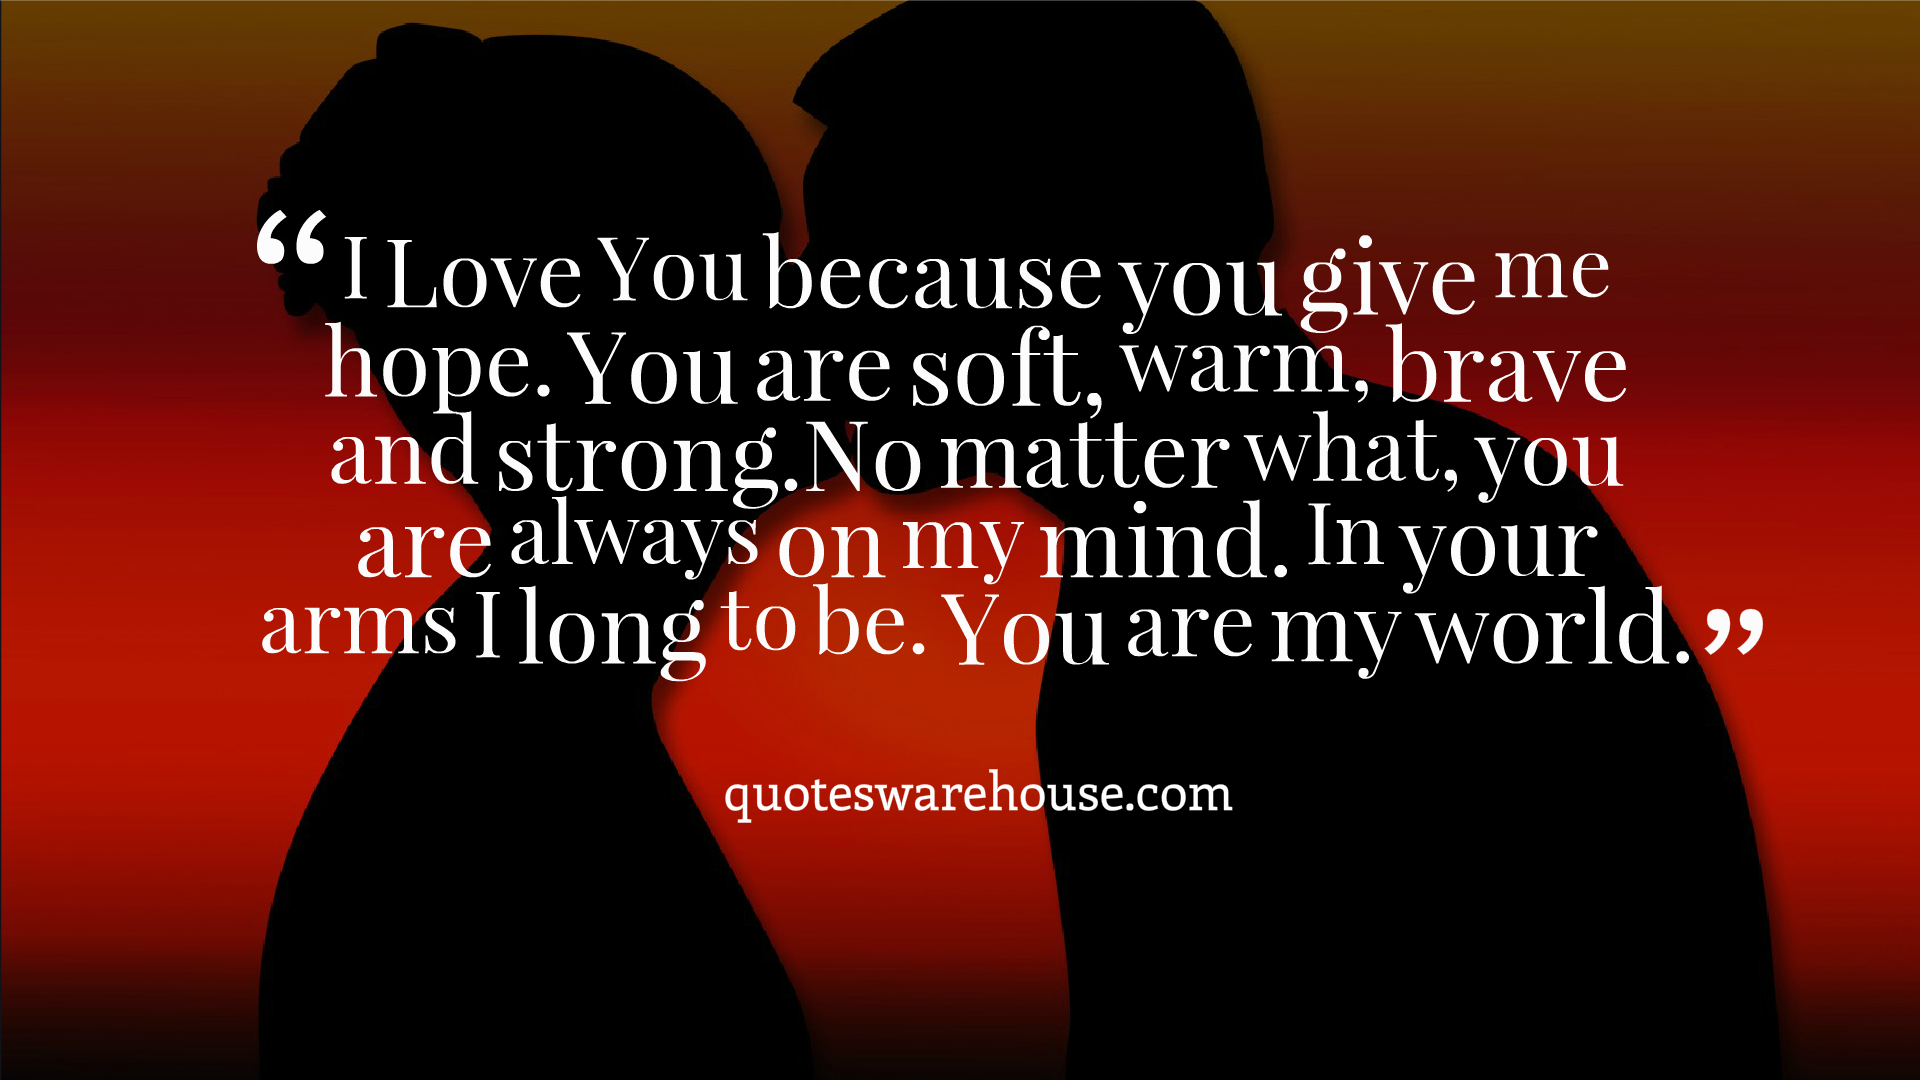 Be Strong My Love Quotes: I Love You Because You Give Me Hope. You Are Soft, Warm